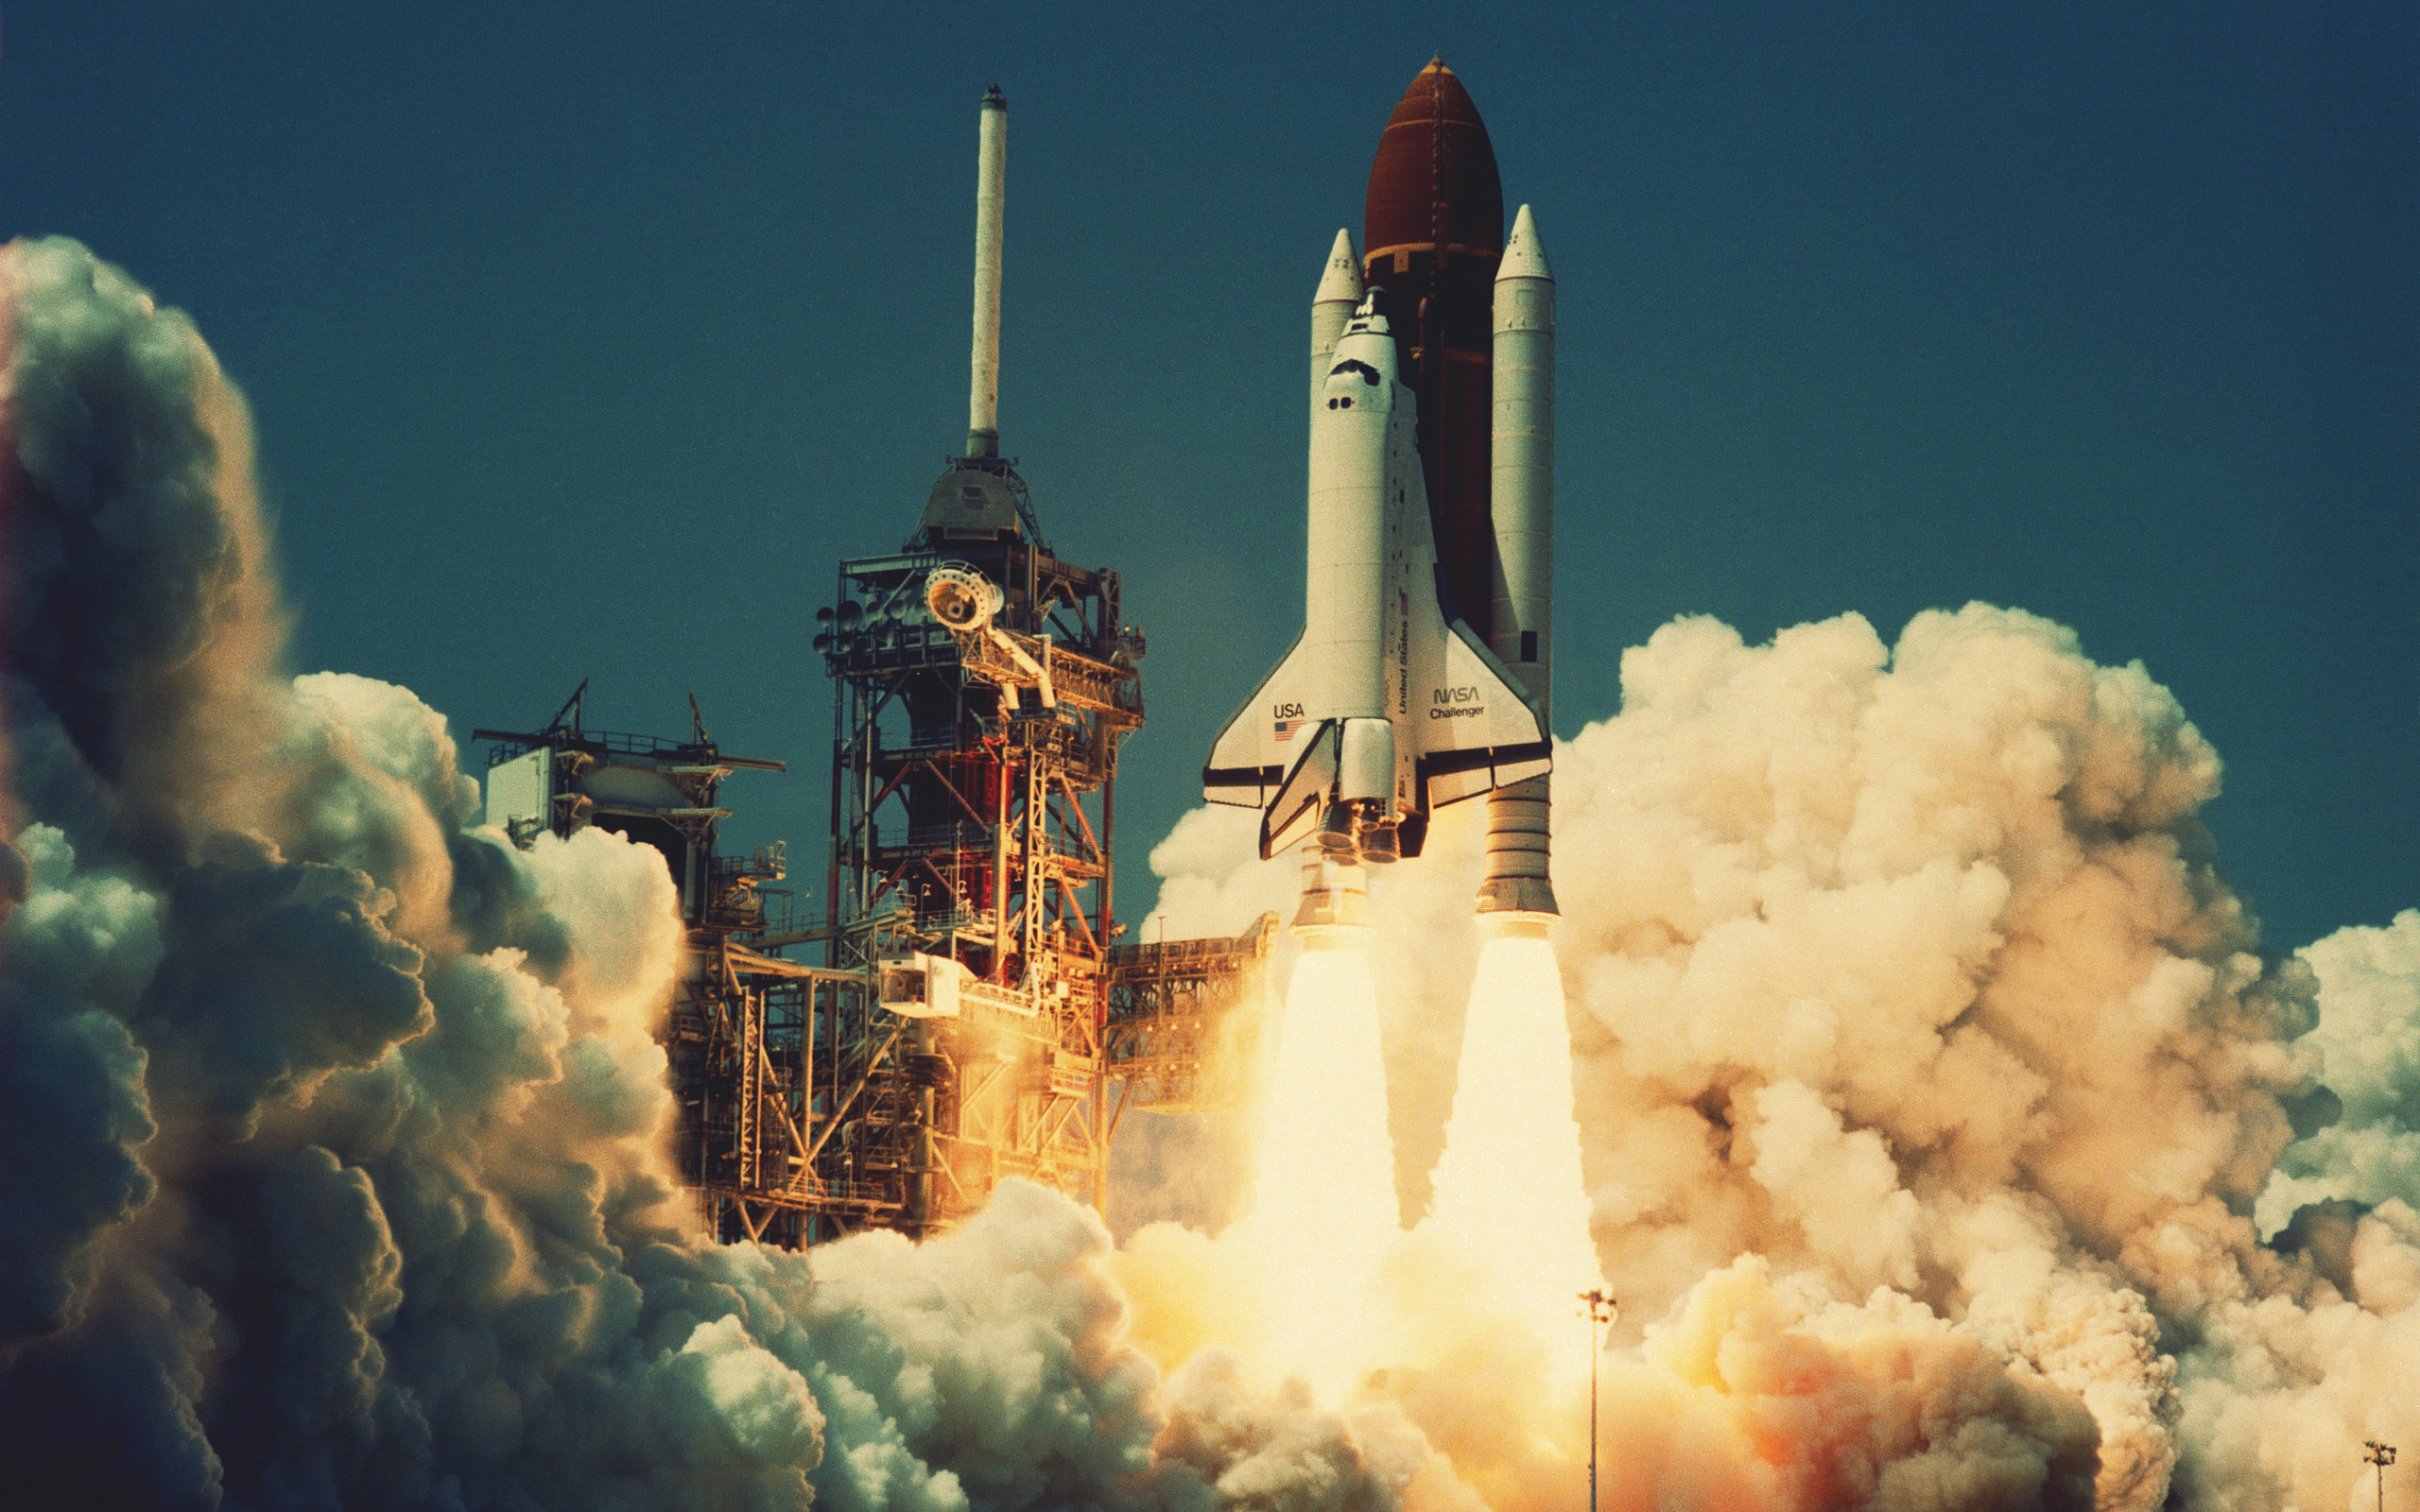 3 Space Shuttle Challenger HD Wallpapers Background Images 2560x1600